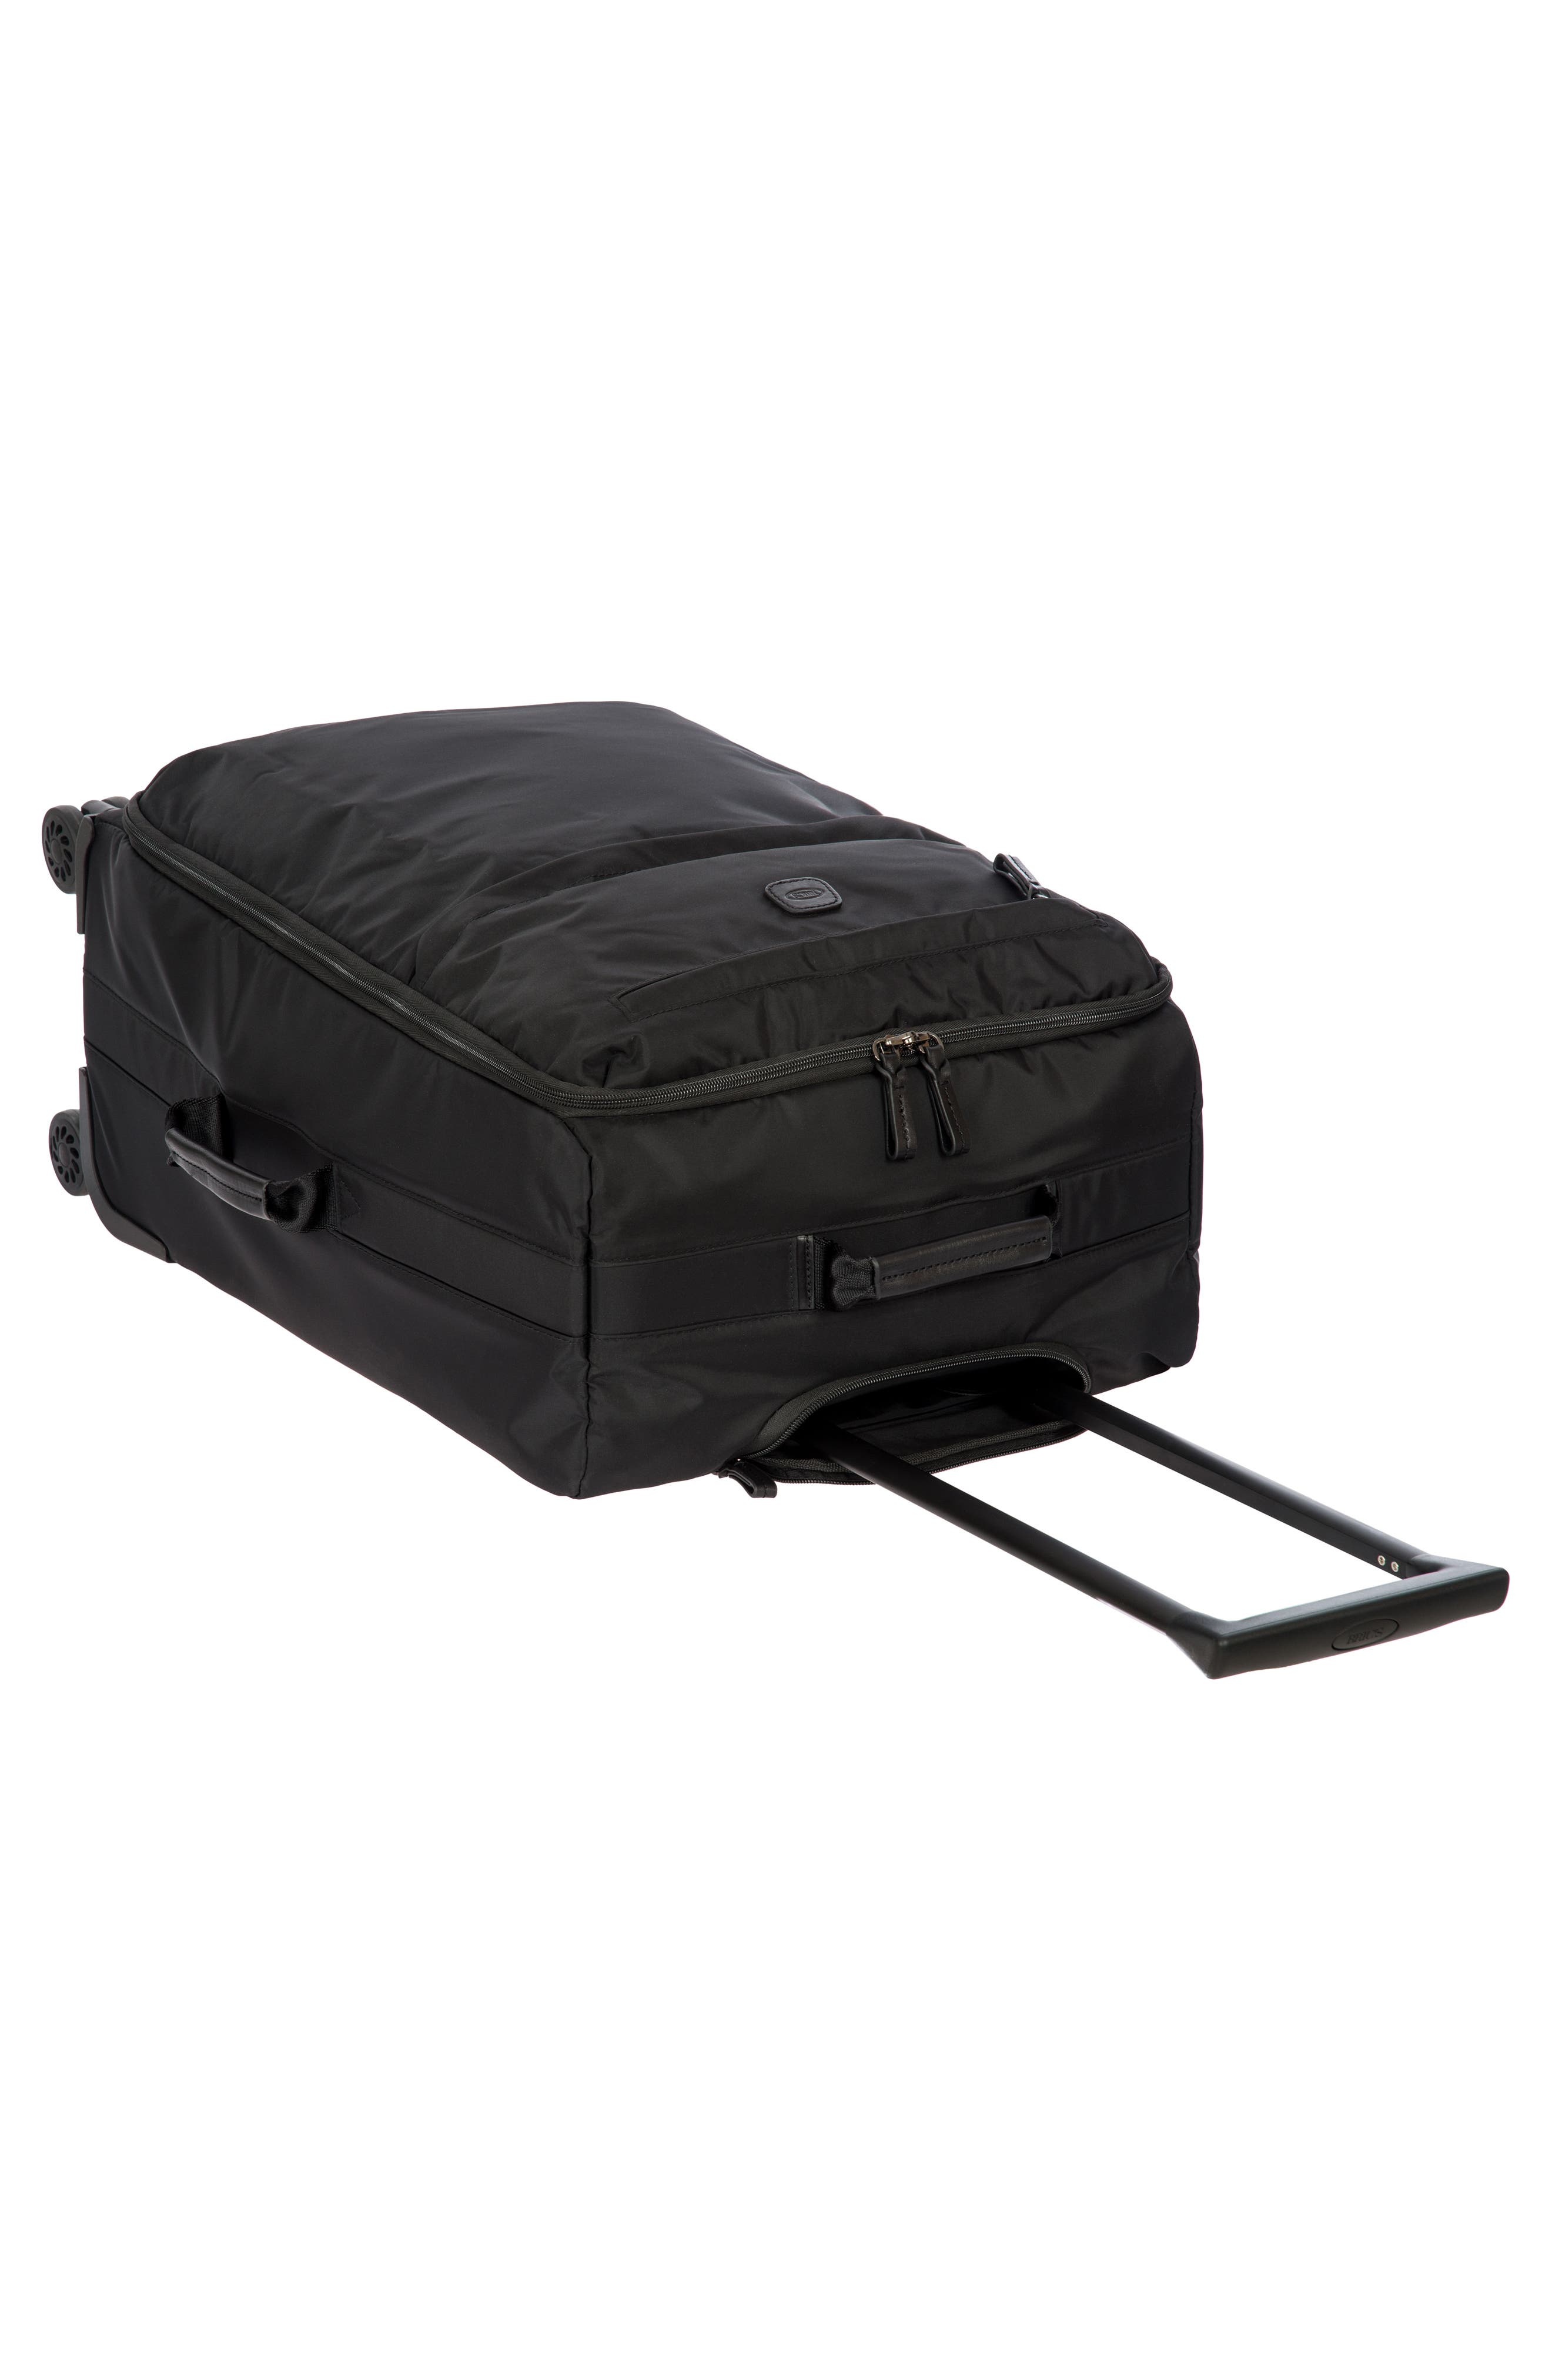 X-Bag 25-Inch Spinner Suitcase,                             Alternate thumbnail 7, color,                             001